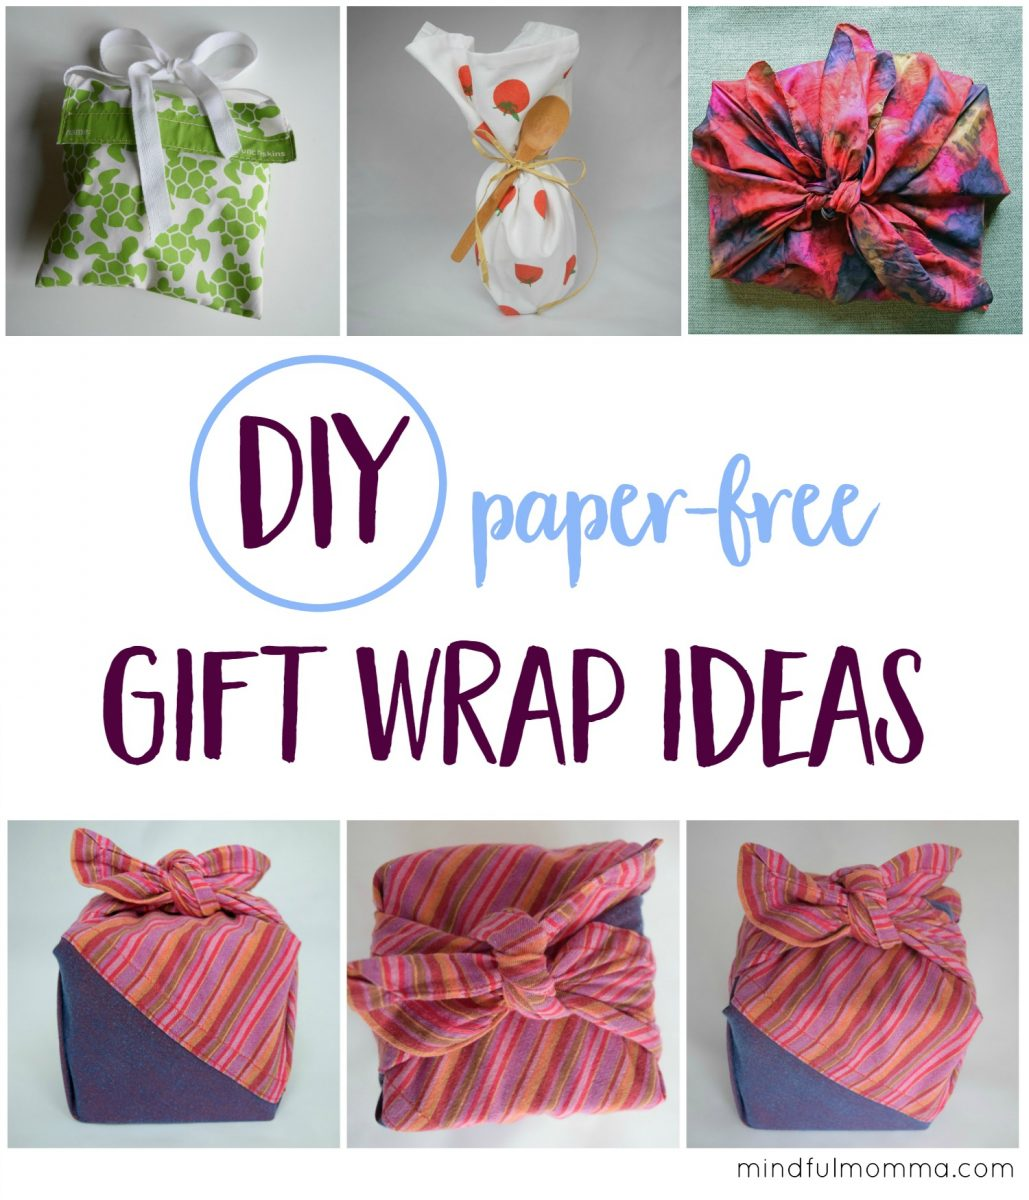 Gift Wrapping Ideas For Wedding: Unique Gift Wrapping Ideas That Are Part Of The Gift